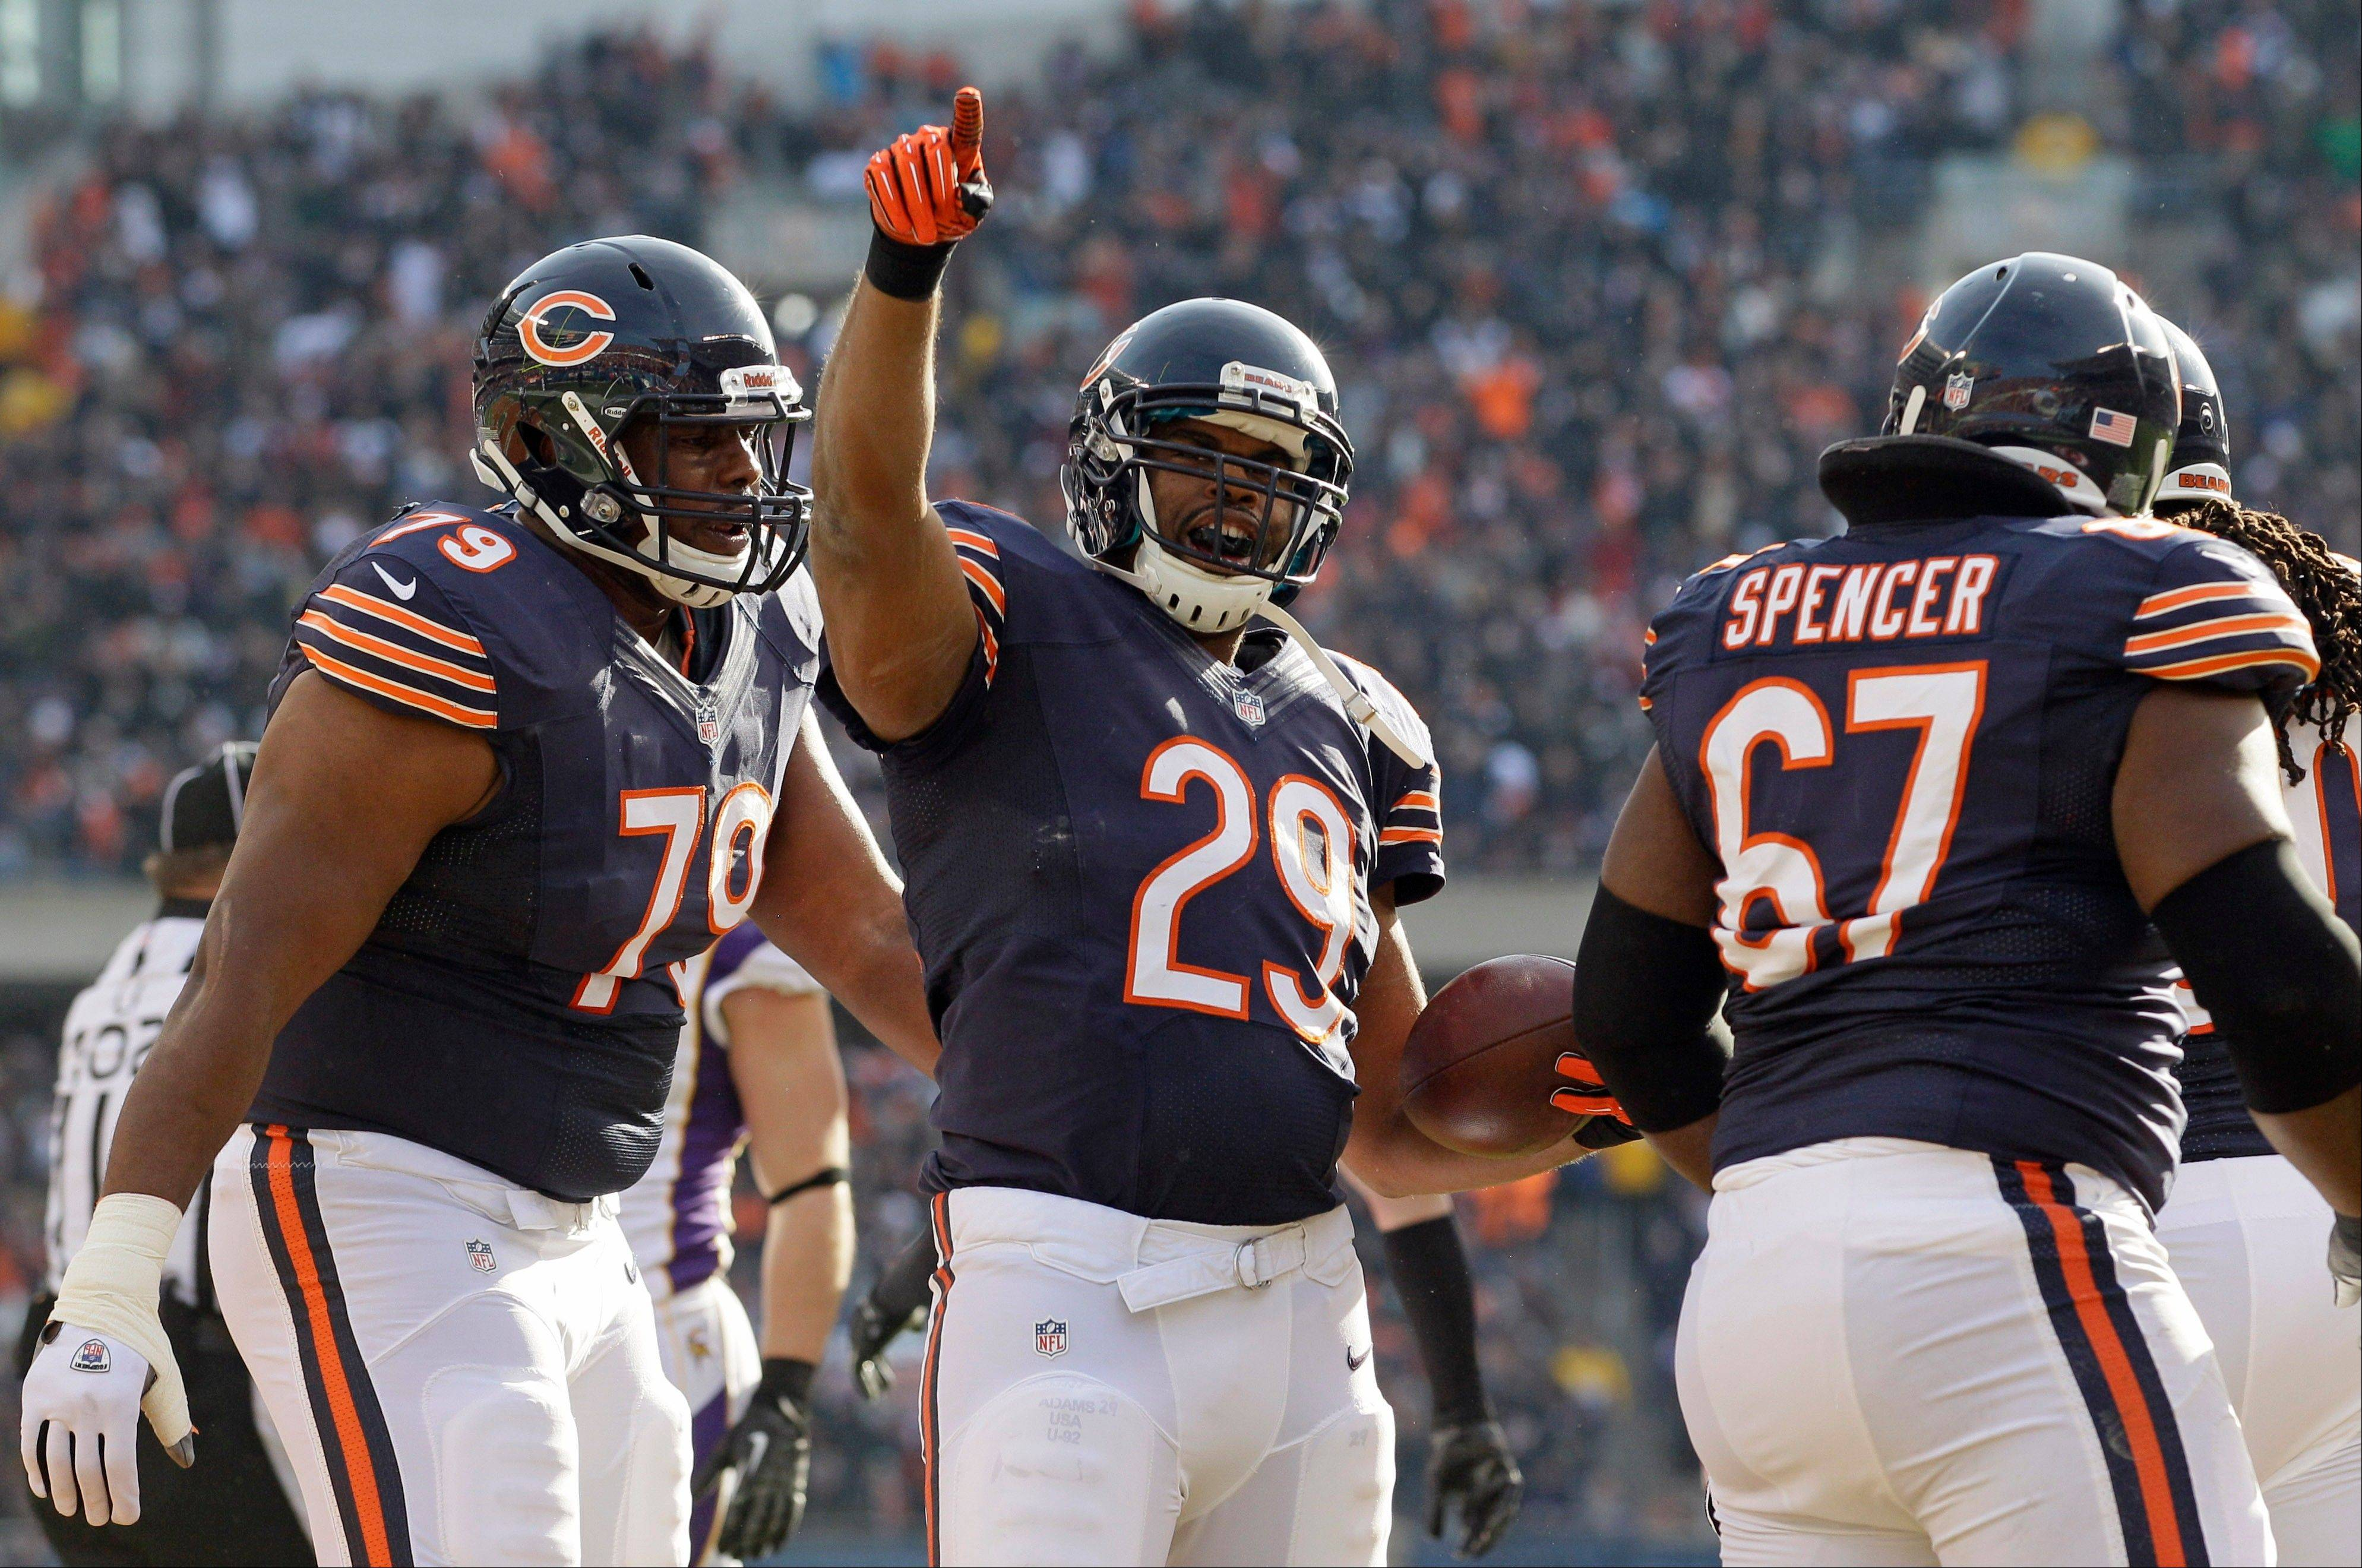 Chicago Bears running back Michael Bush (29) celebrates his touchdown run against the Minnesota Vikings in the first half of an NFL football game in Chicago, Sunday.